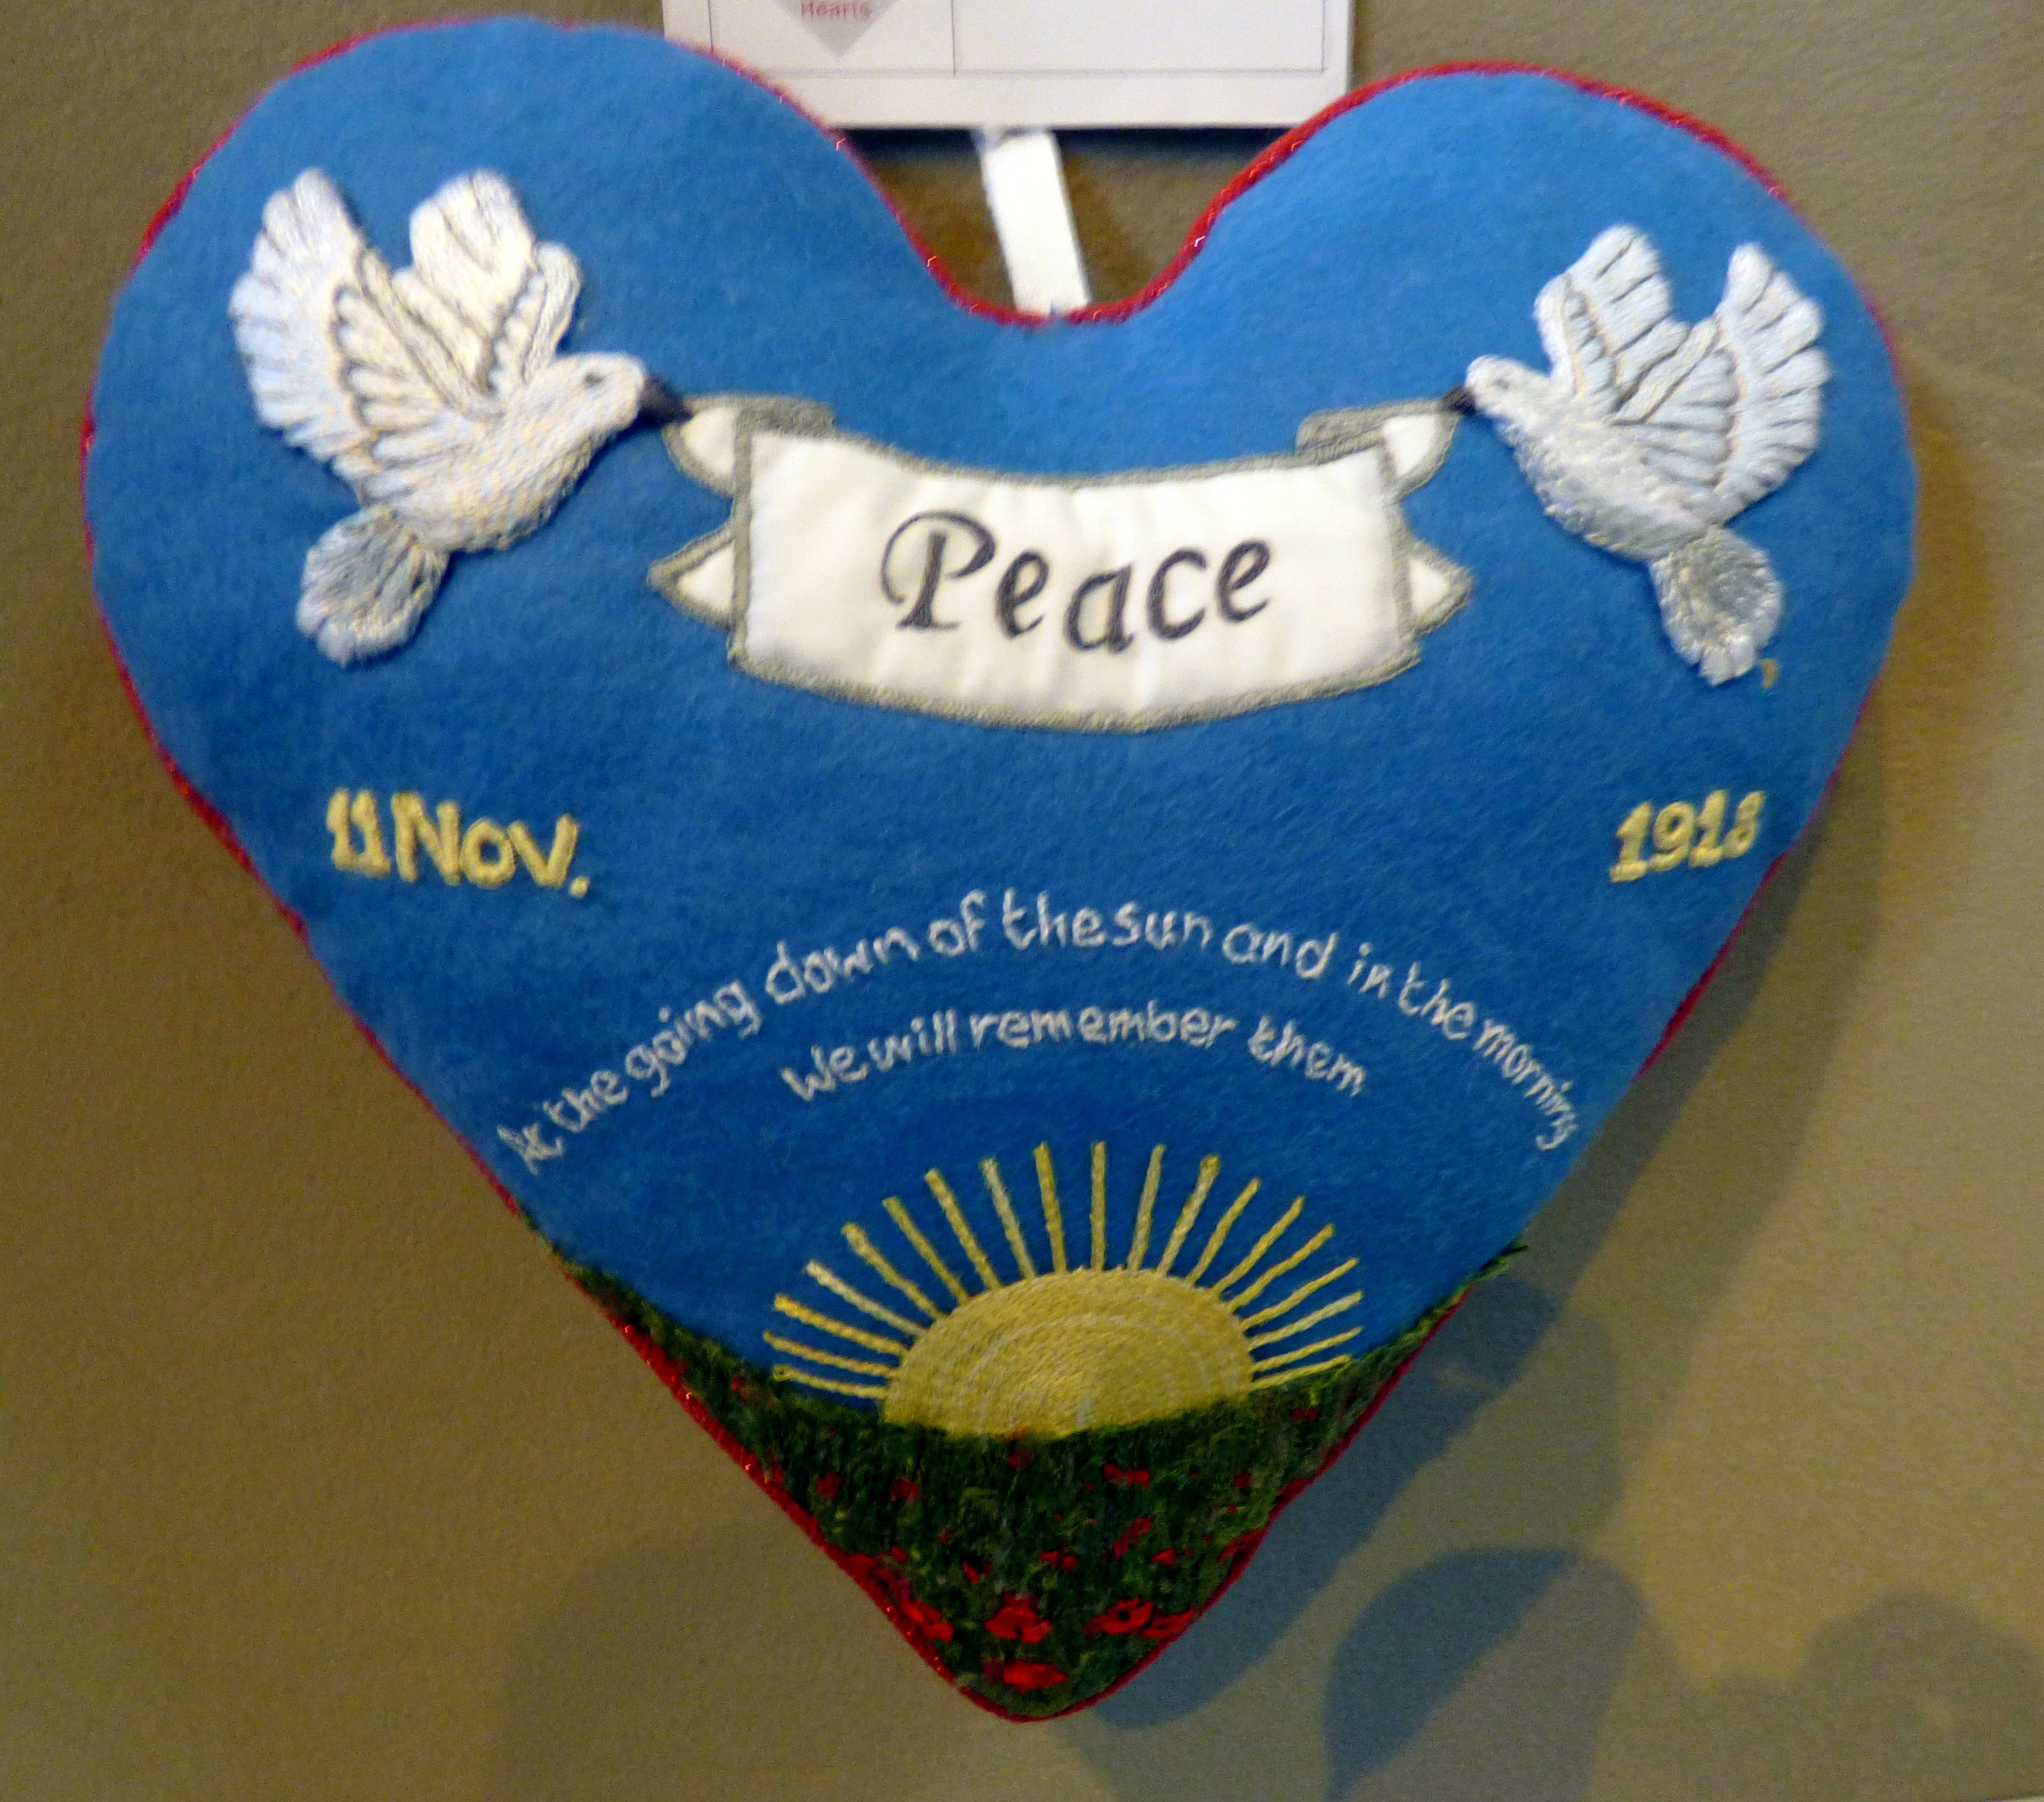 CELEBRATING PEACE by Lorna Batten, 100 Hearts exhibition, Liverpool Cathedral, Sept 2018